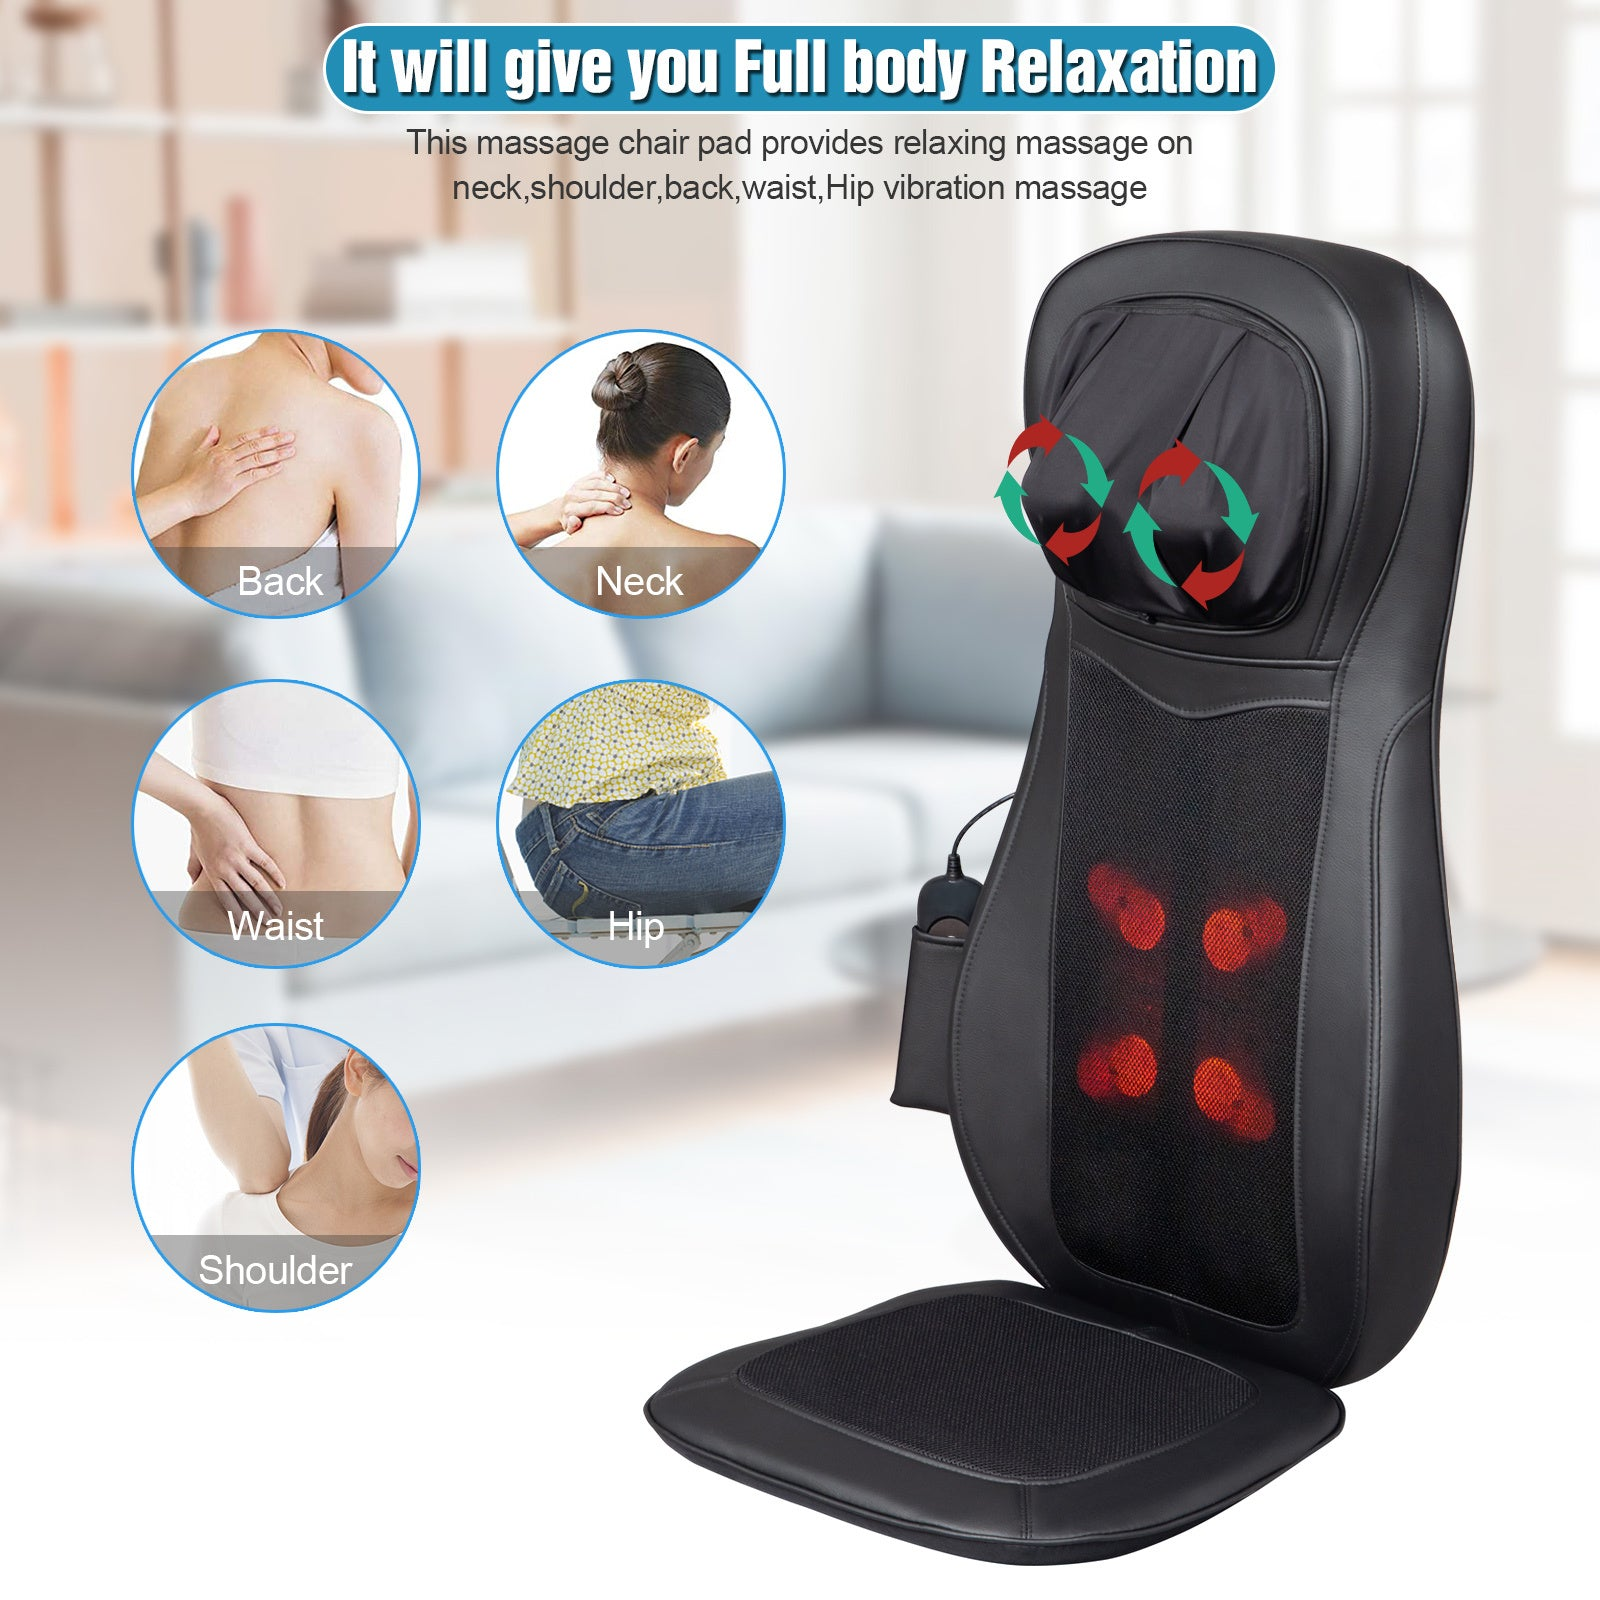 Zokop Shiatsu Neck & Back Massager with Heat, Full Back Kneading Shiatsu or Rolling Massage with Height Adjustment, Three-stage Vibration Massage for Buttocks ,Massage Chair Pad YF